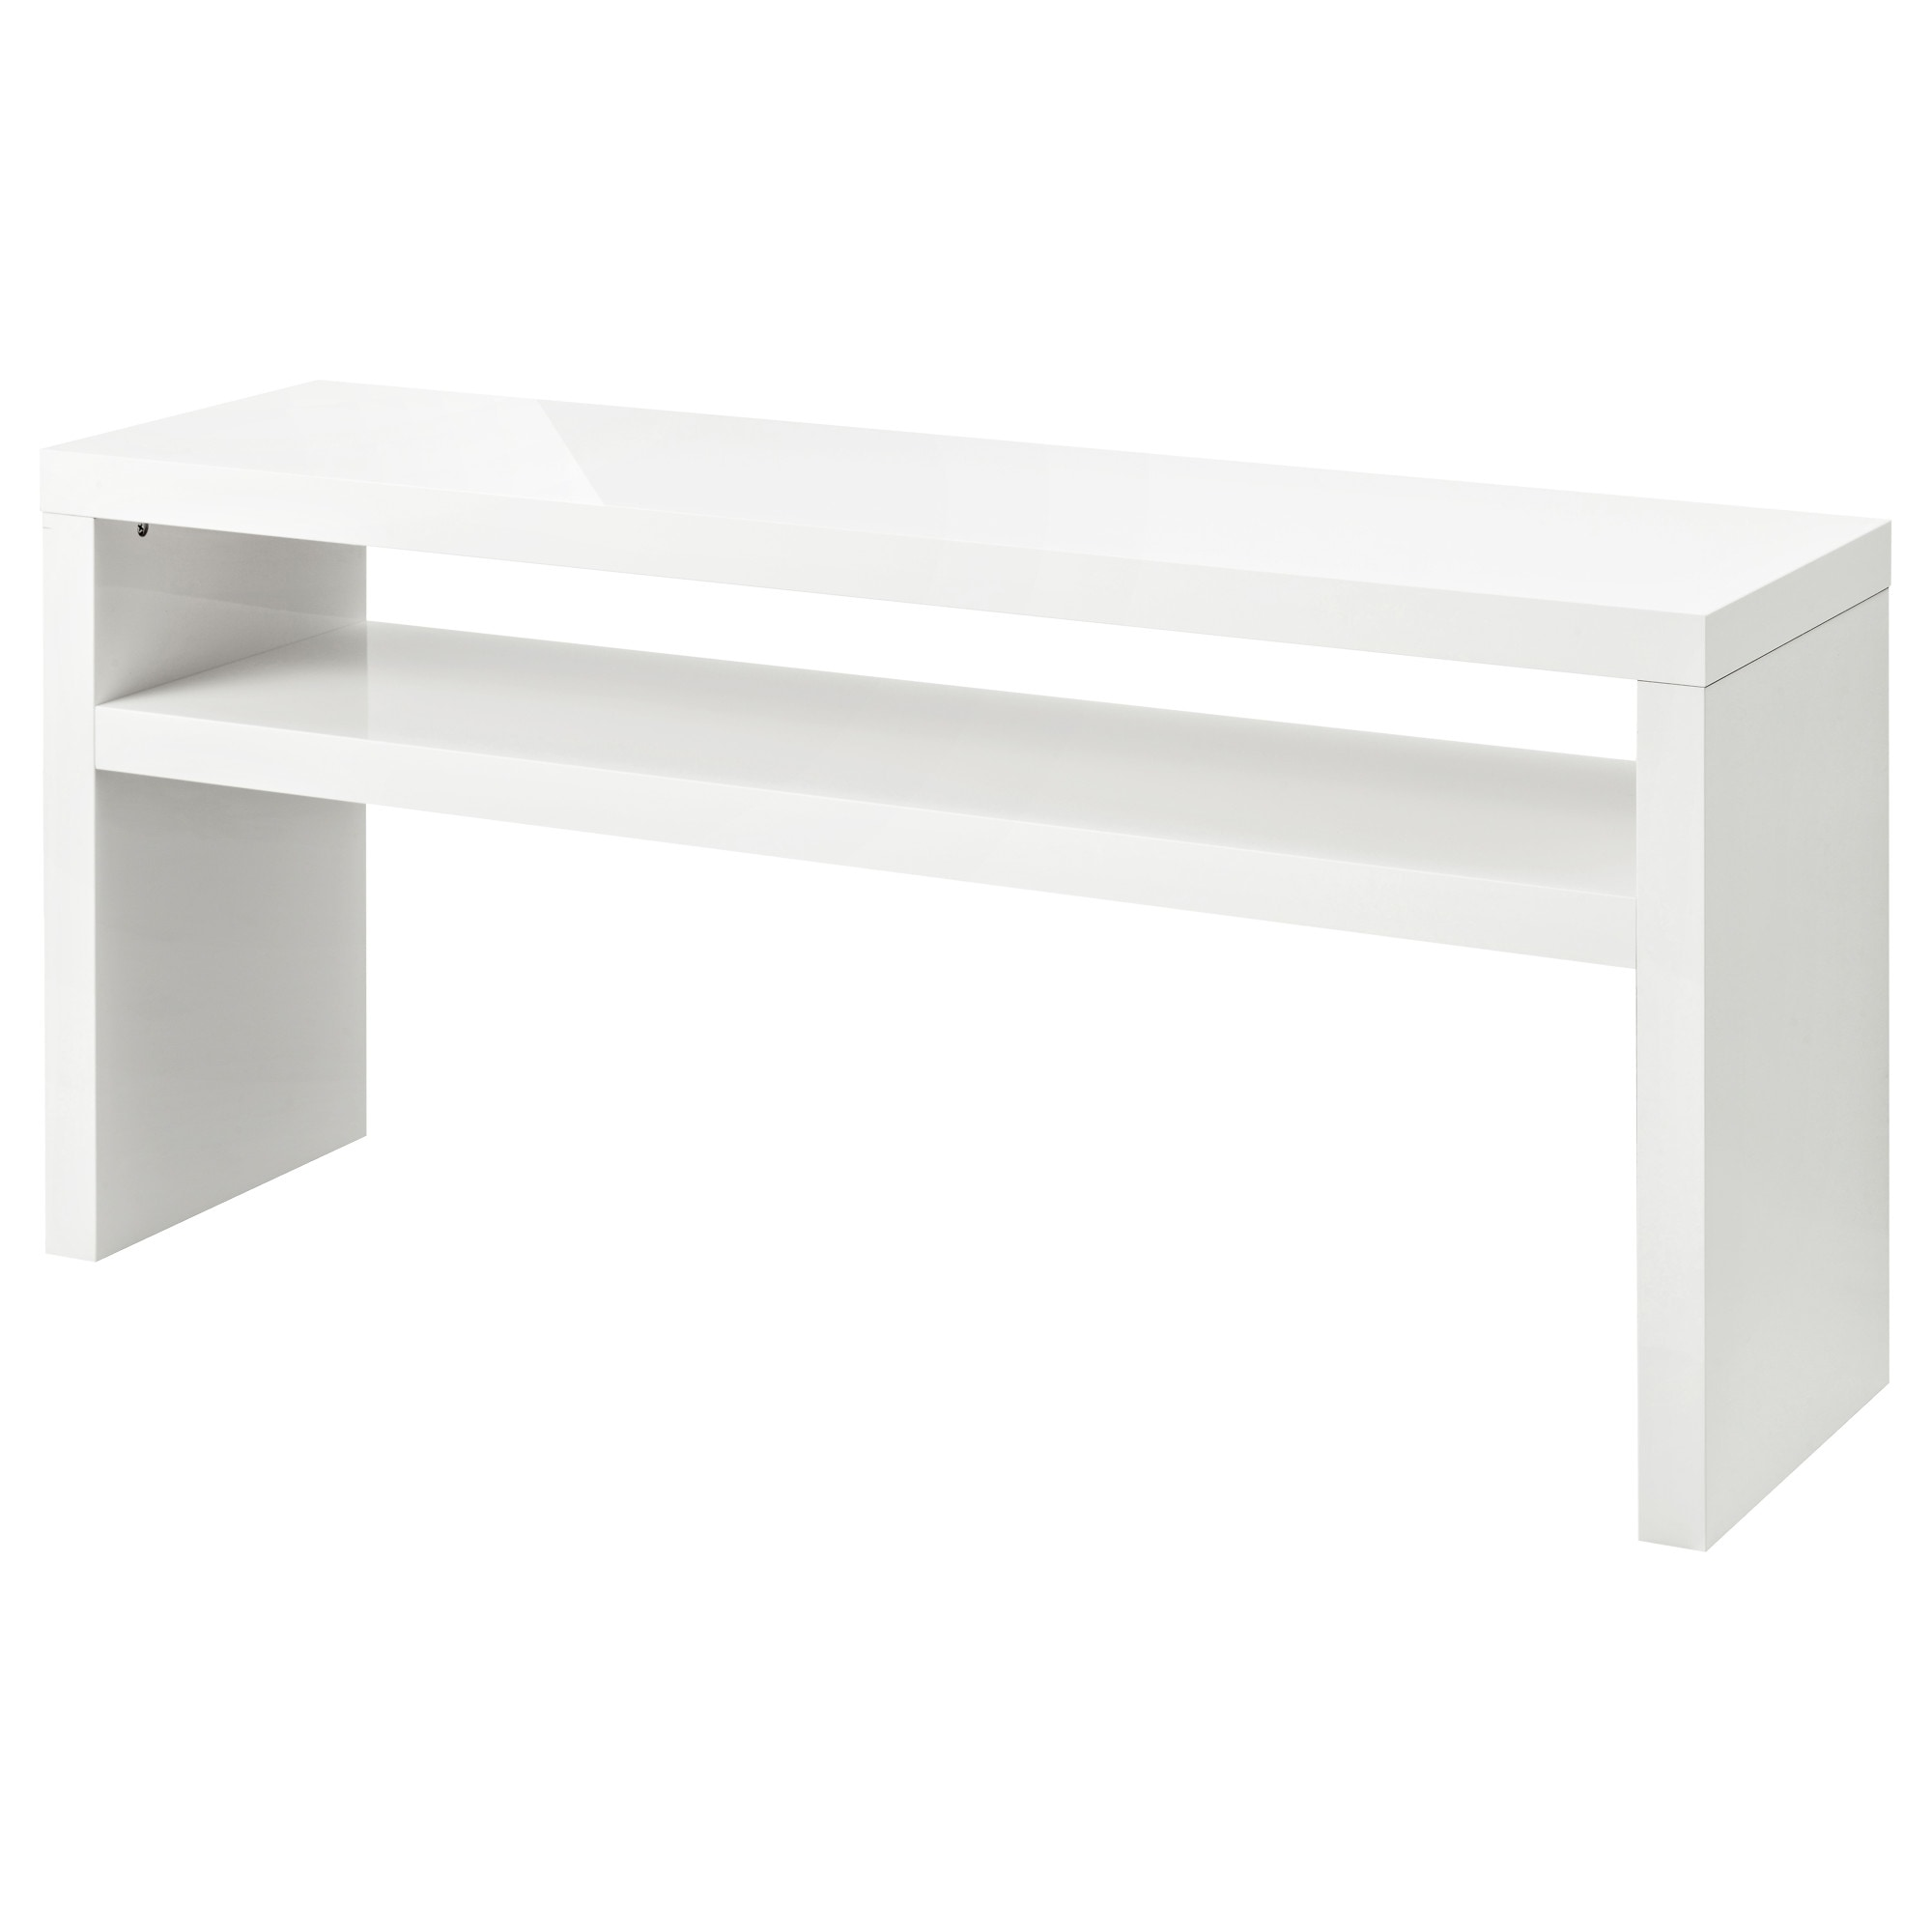 Sideboards Buffets Console Tables Storage Furniture IKEA - Console tables ikea